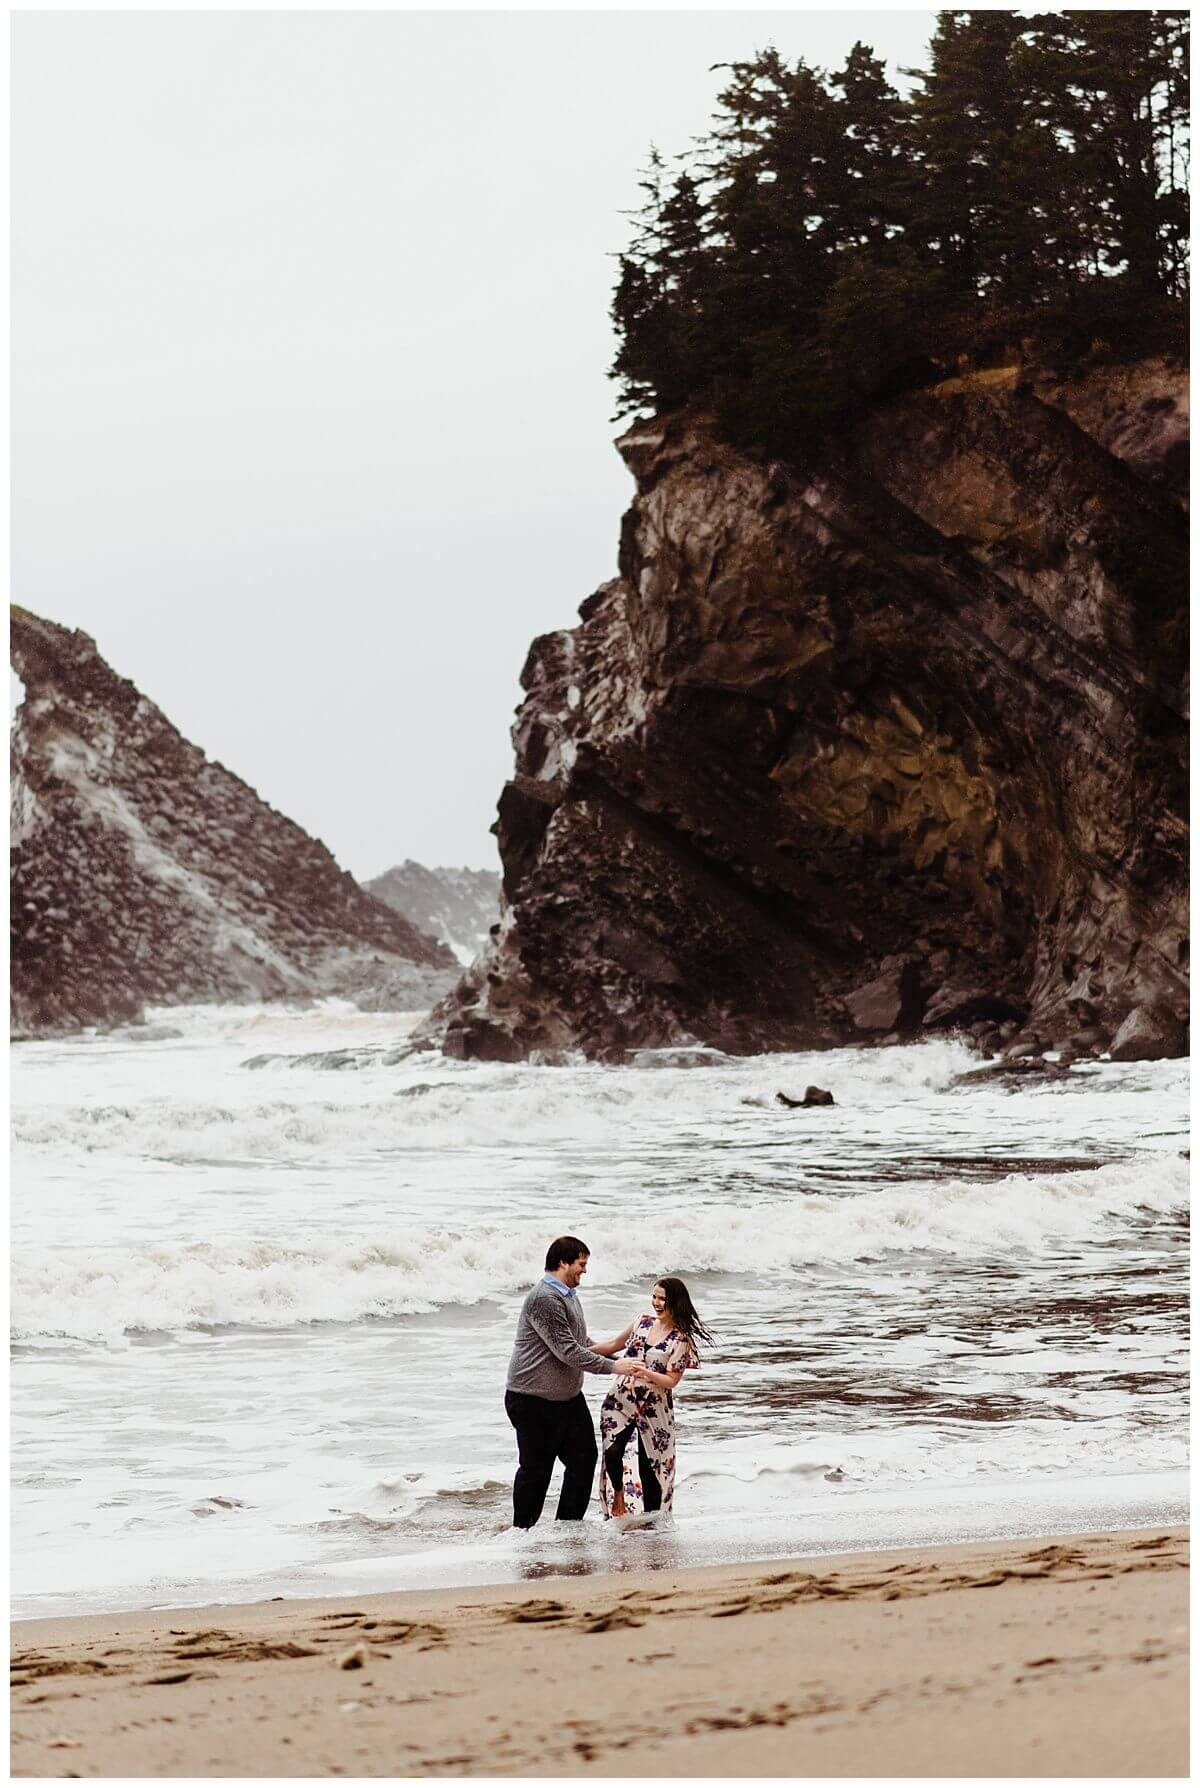 Simpson Beach Shore Acres Coos Bay Adventure Engagement Session - S Photography Intimate Weddings and Adventure Elopements